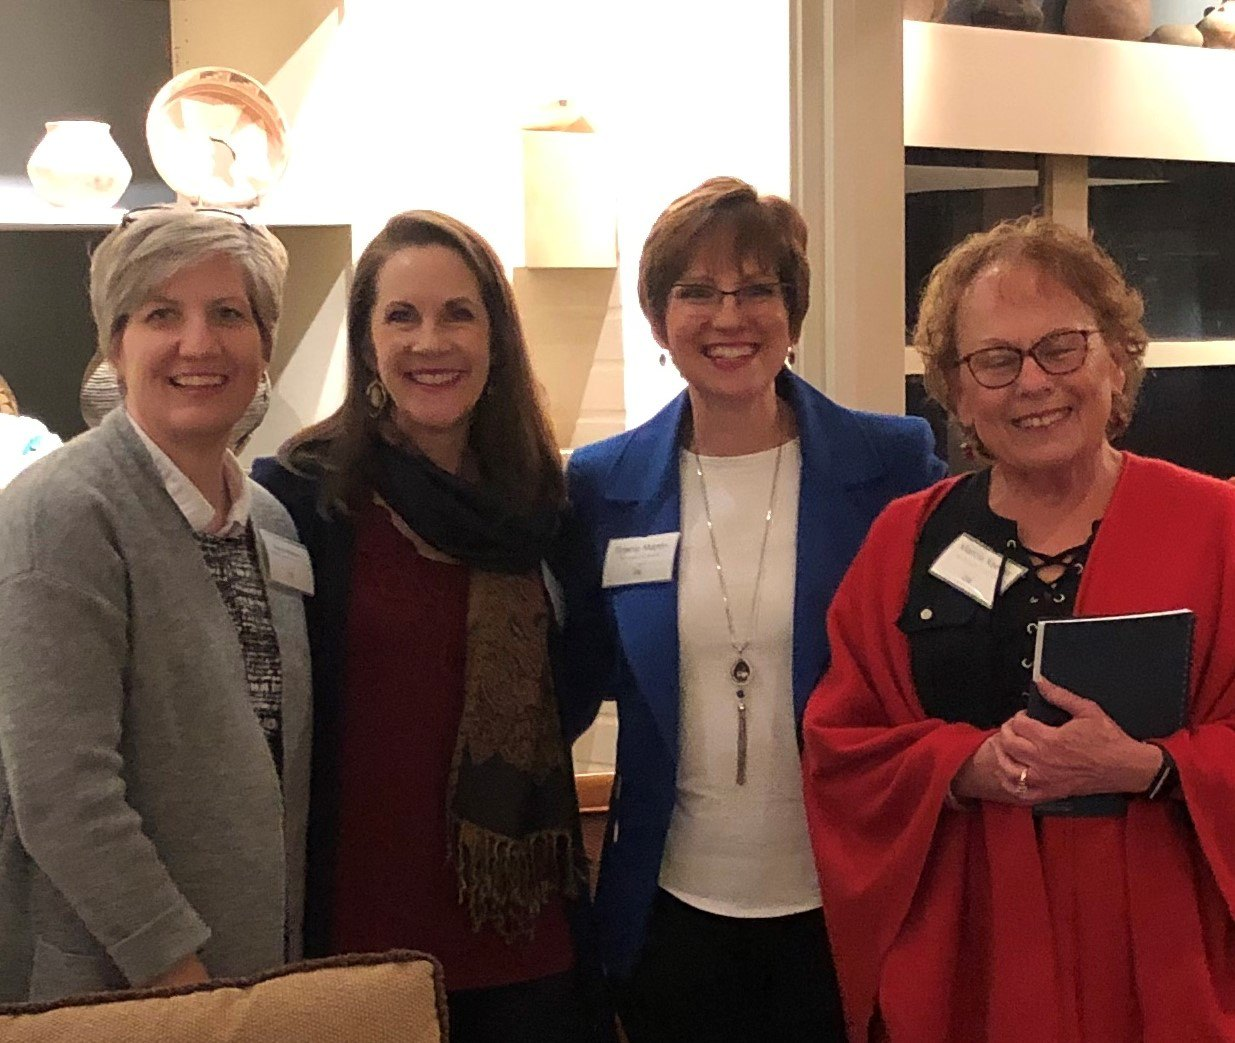 Members From left, Virginia Whitham, Lisa Wright, Gracie Martin, and Marcia Keener